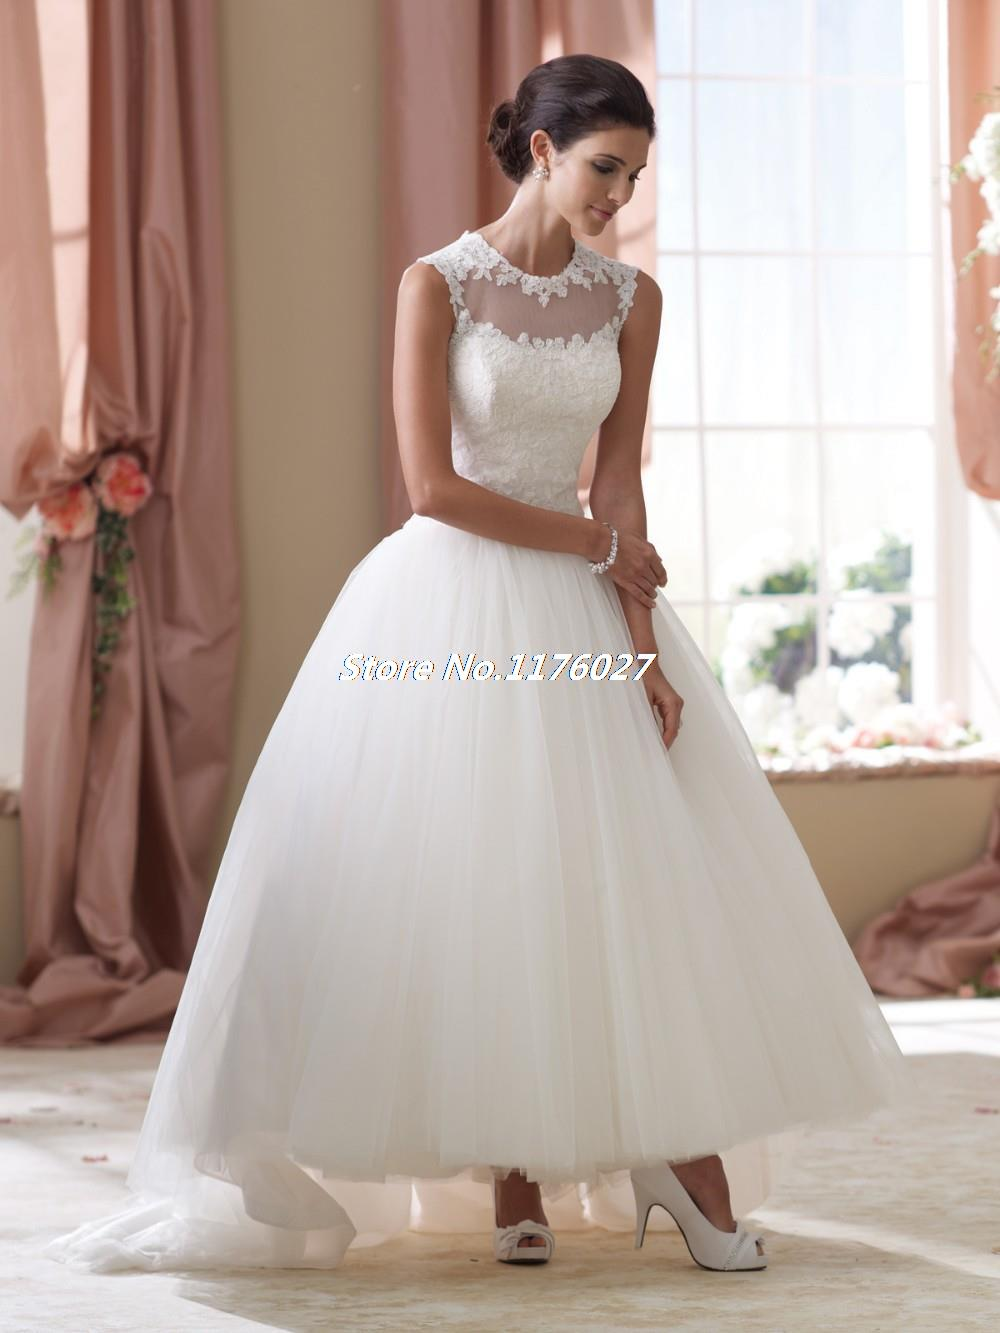 budget tea length wedding dress beach wedding dresses cheap Picture wedding dress wedding dresses tea length wedding dresses short wedding dresses